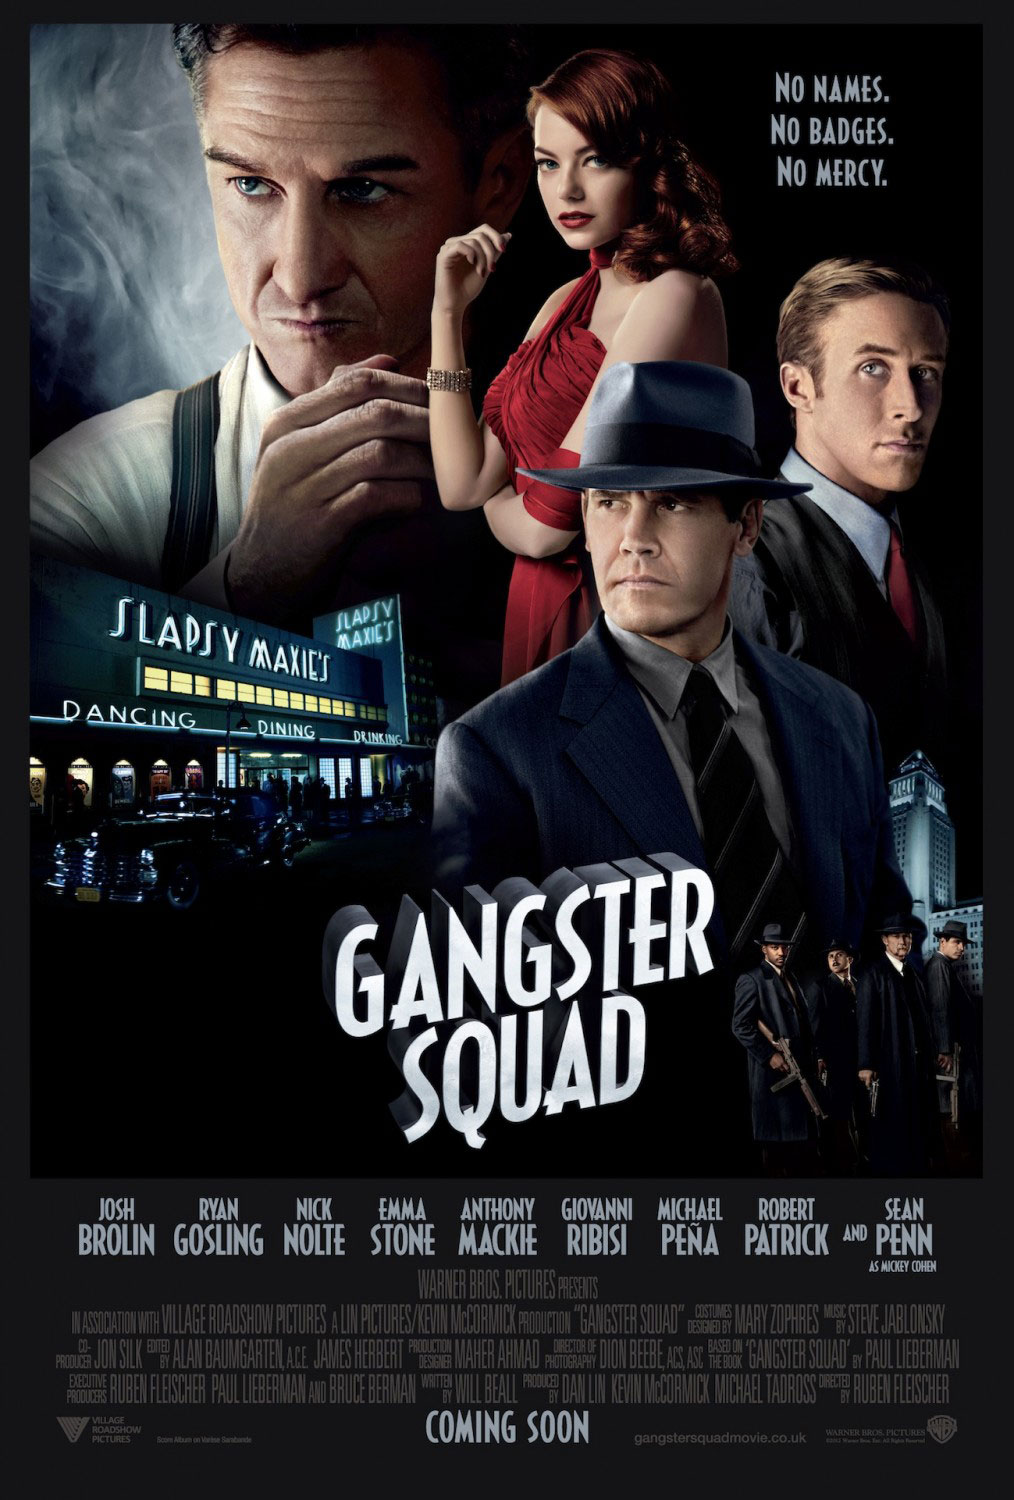 Gangster Suqad (2013)